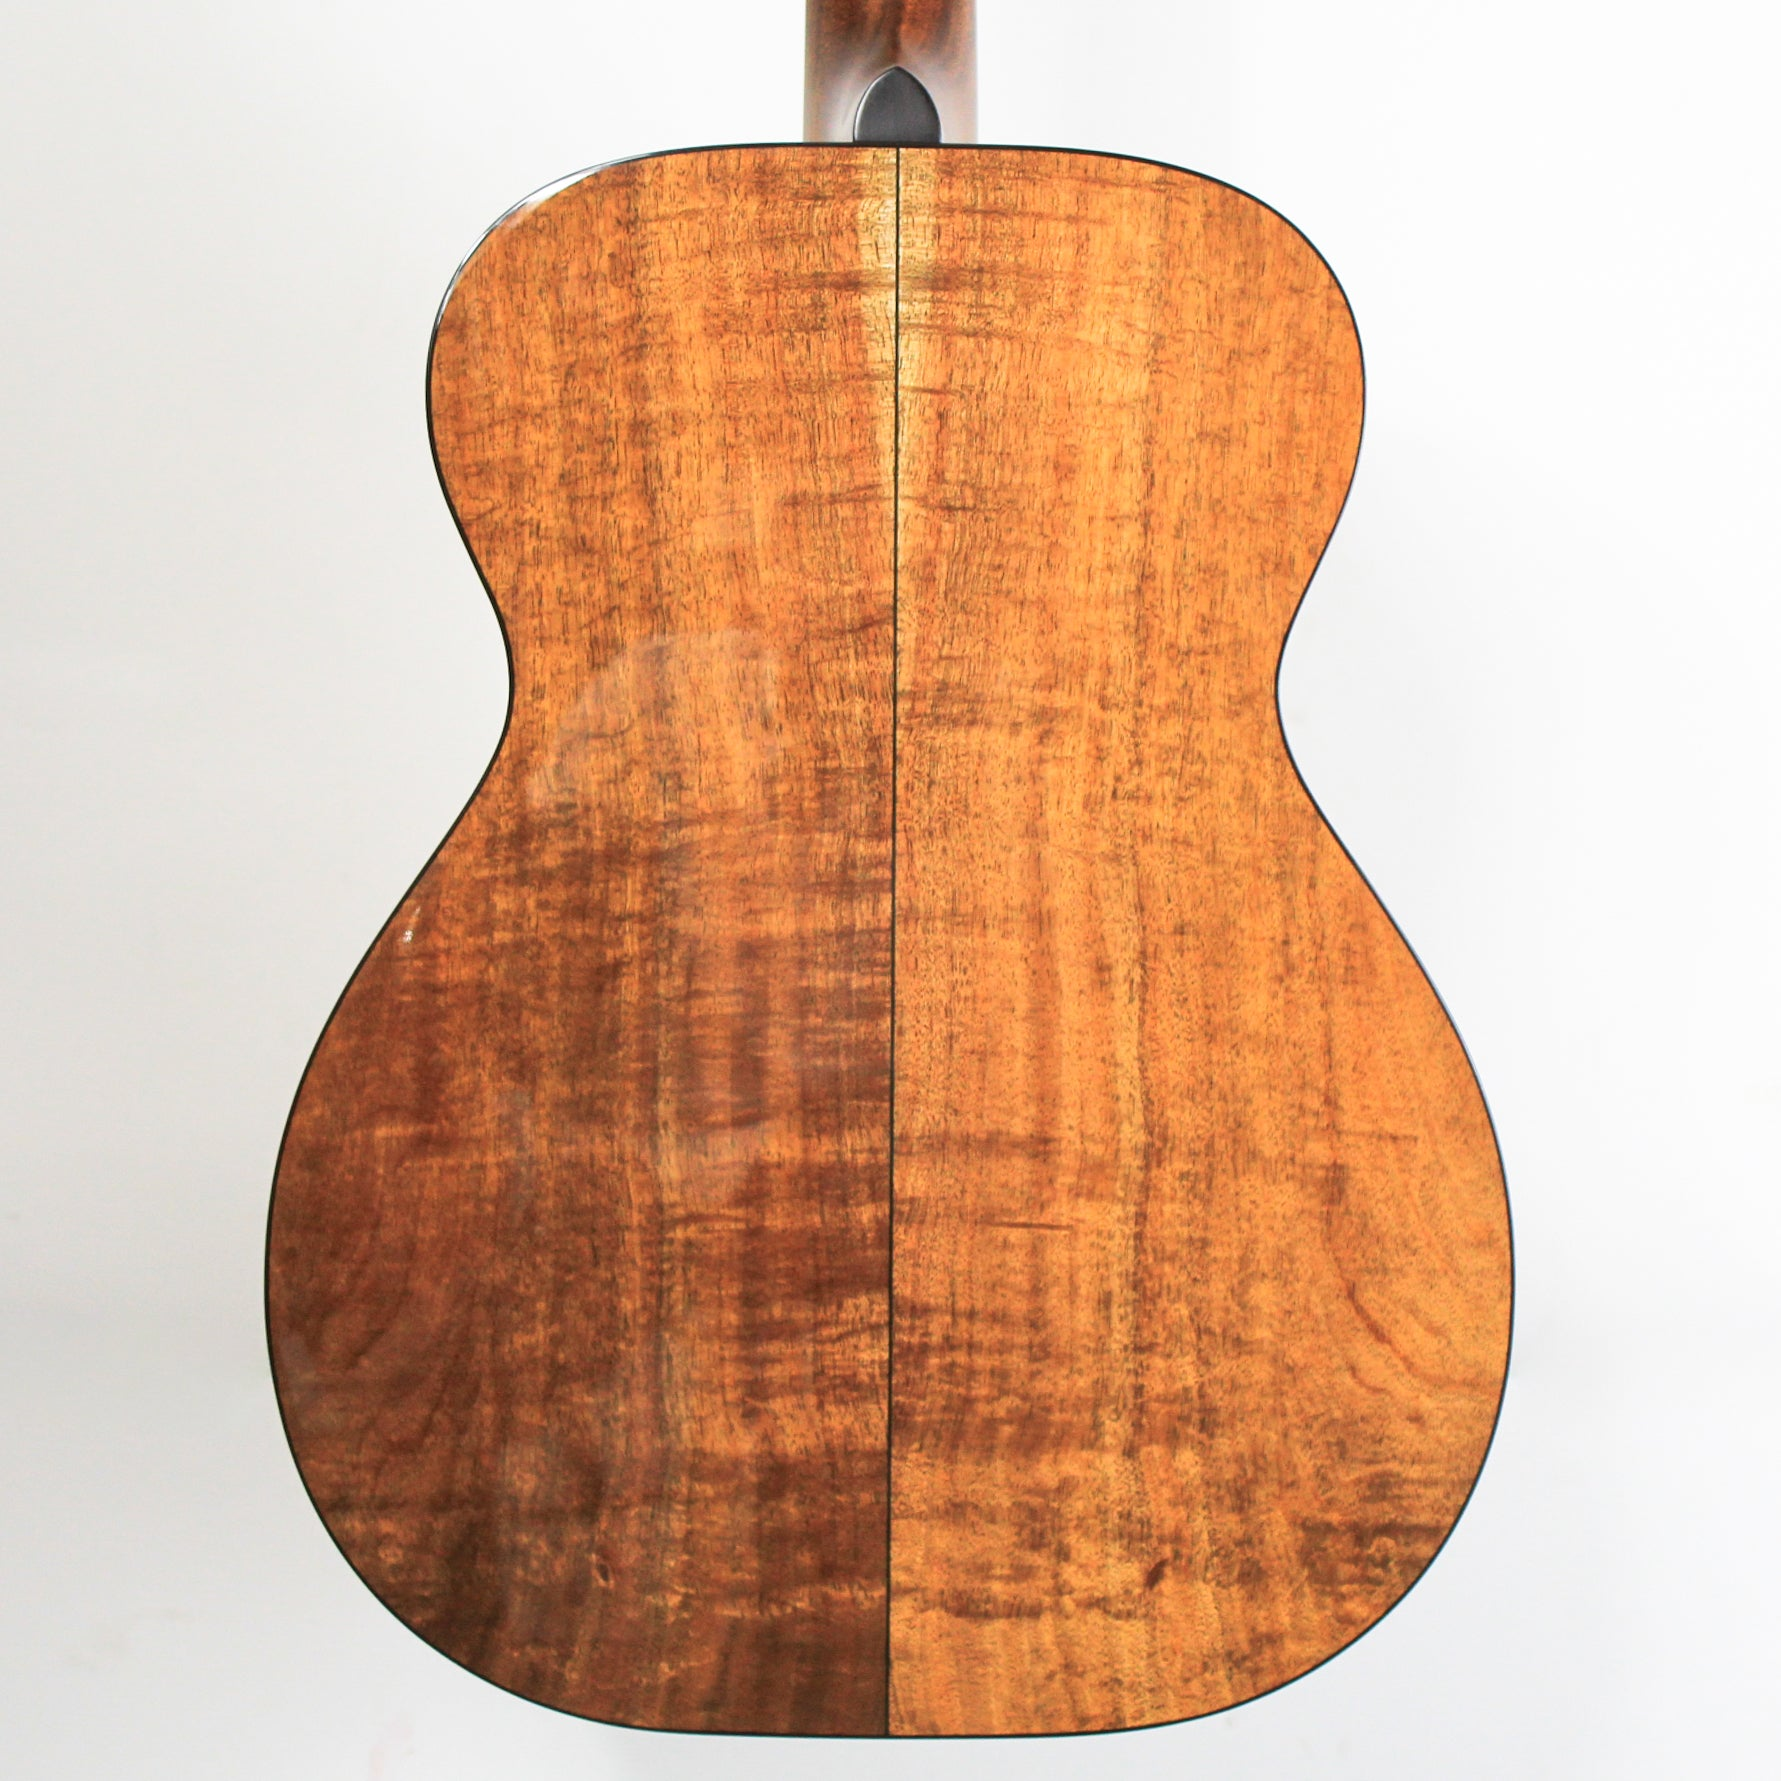 Huss and Dalton TOM-M Custom Blackwood, Thermo-Cured Red Spruce, Australian Blackwood